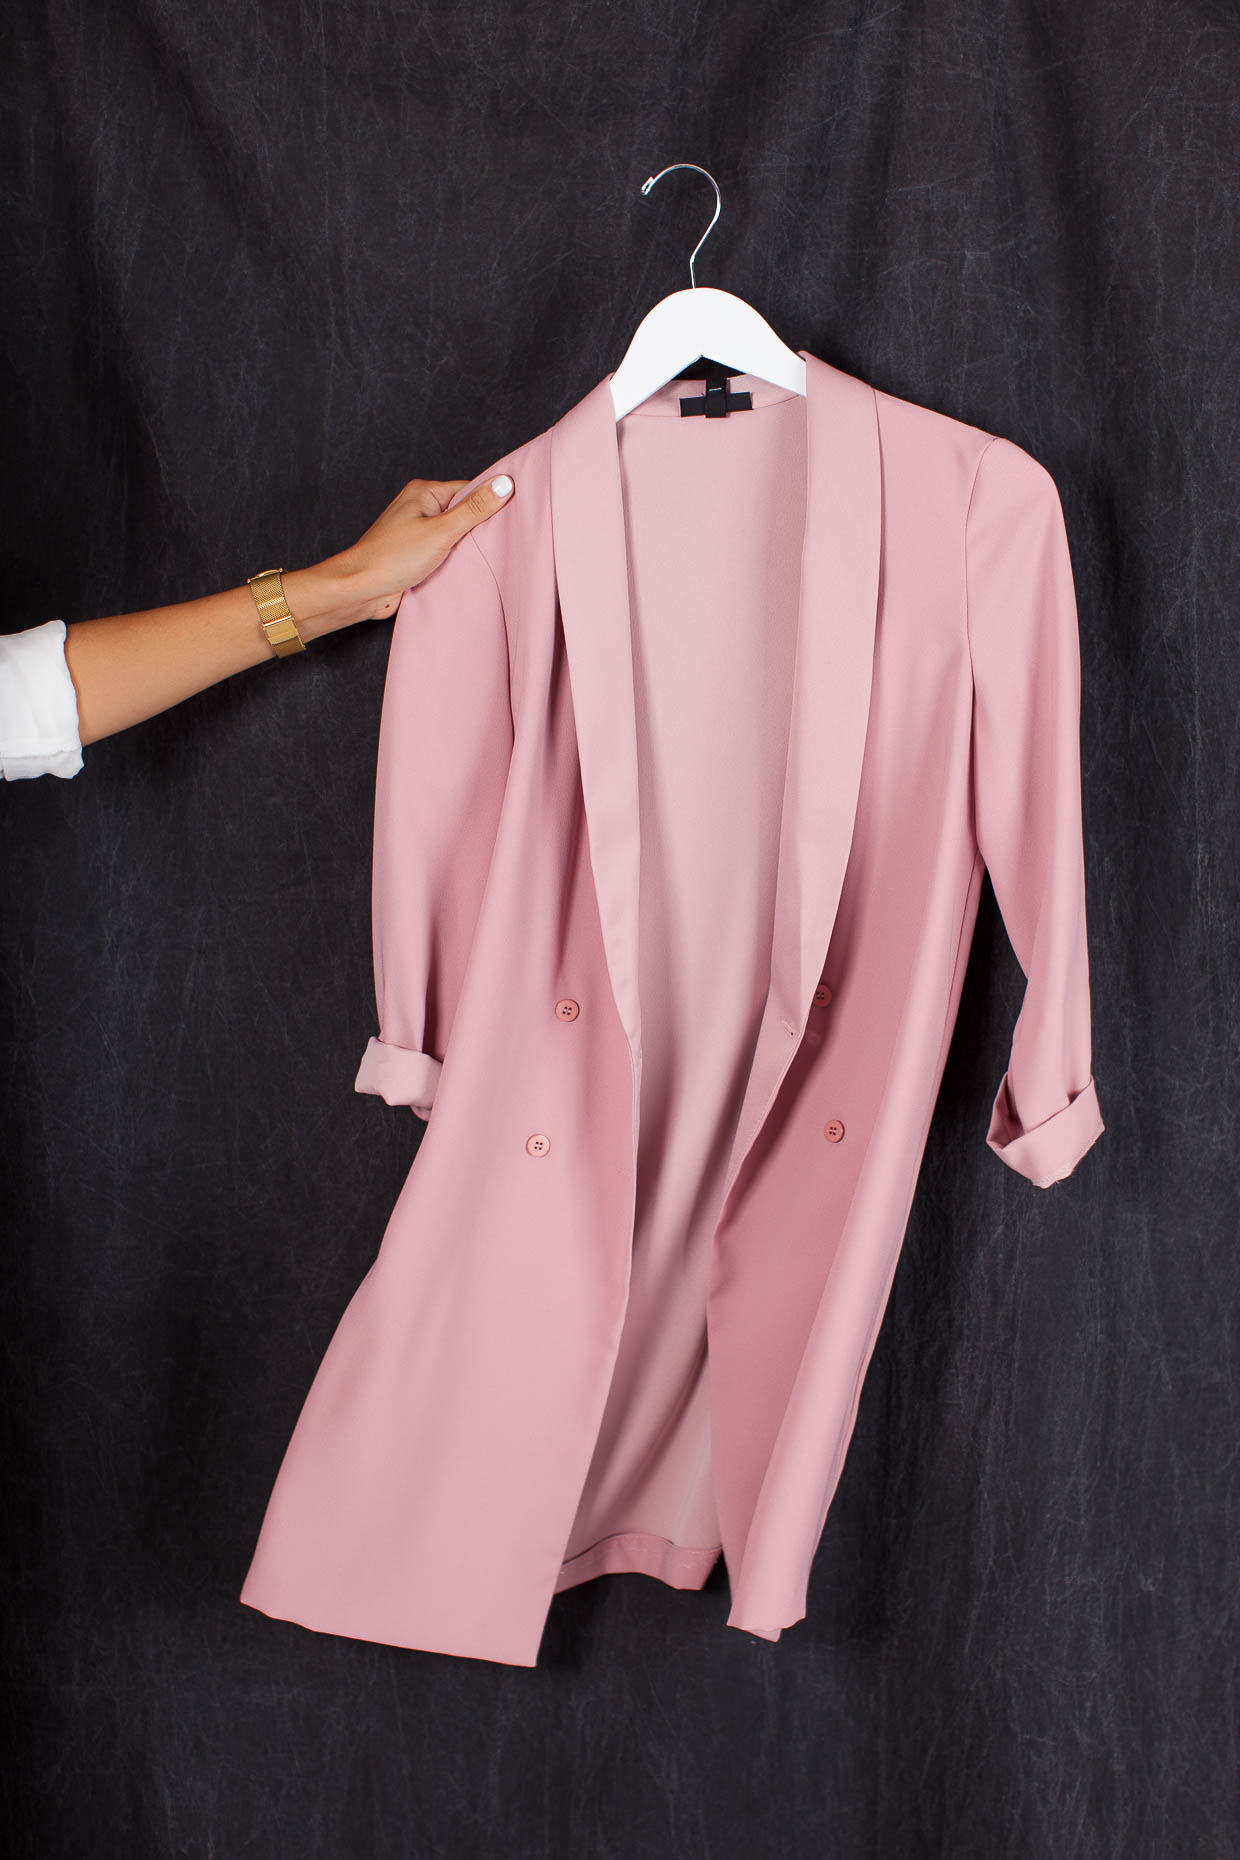 The Darling Detail is showing off a Topshop Slouch Longline Blazer.